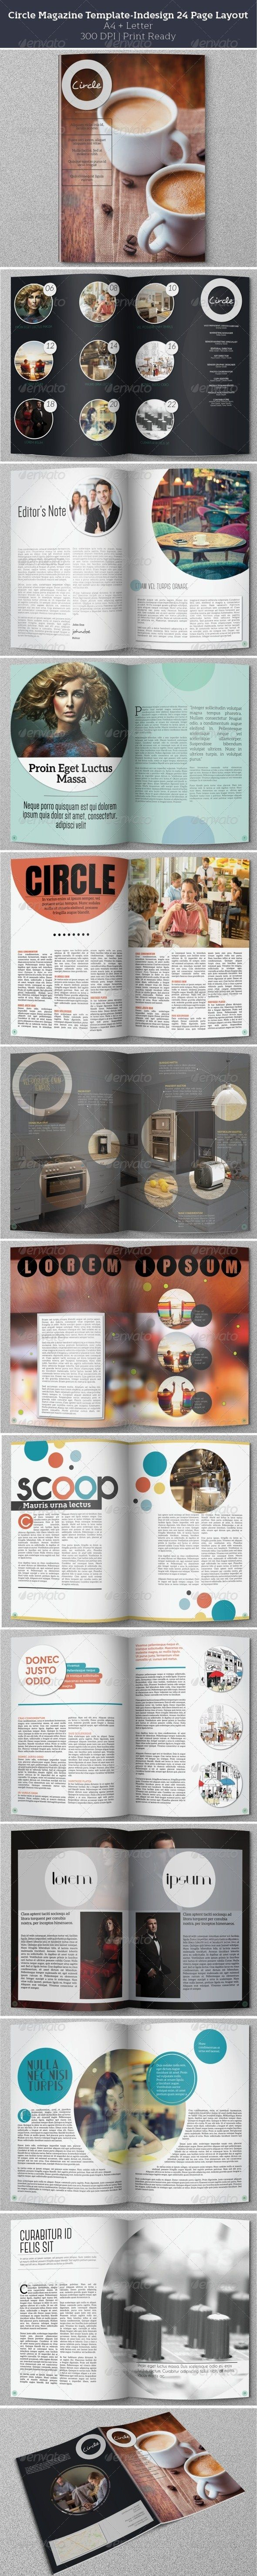 Circle Magazine Template-Indesign 24 Page Layout  http://graphicriver.net/item/circle-magazine-templateindesign-24-page-layout/6116724